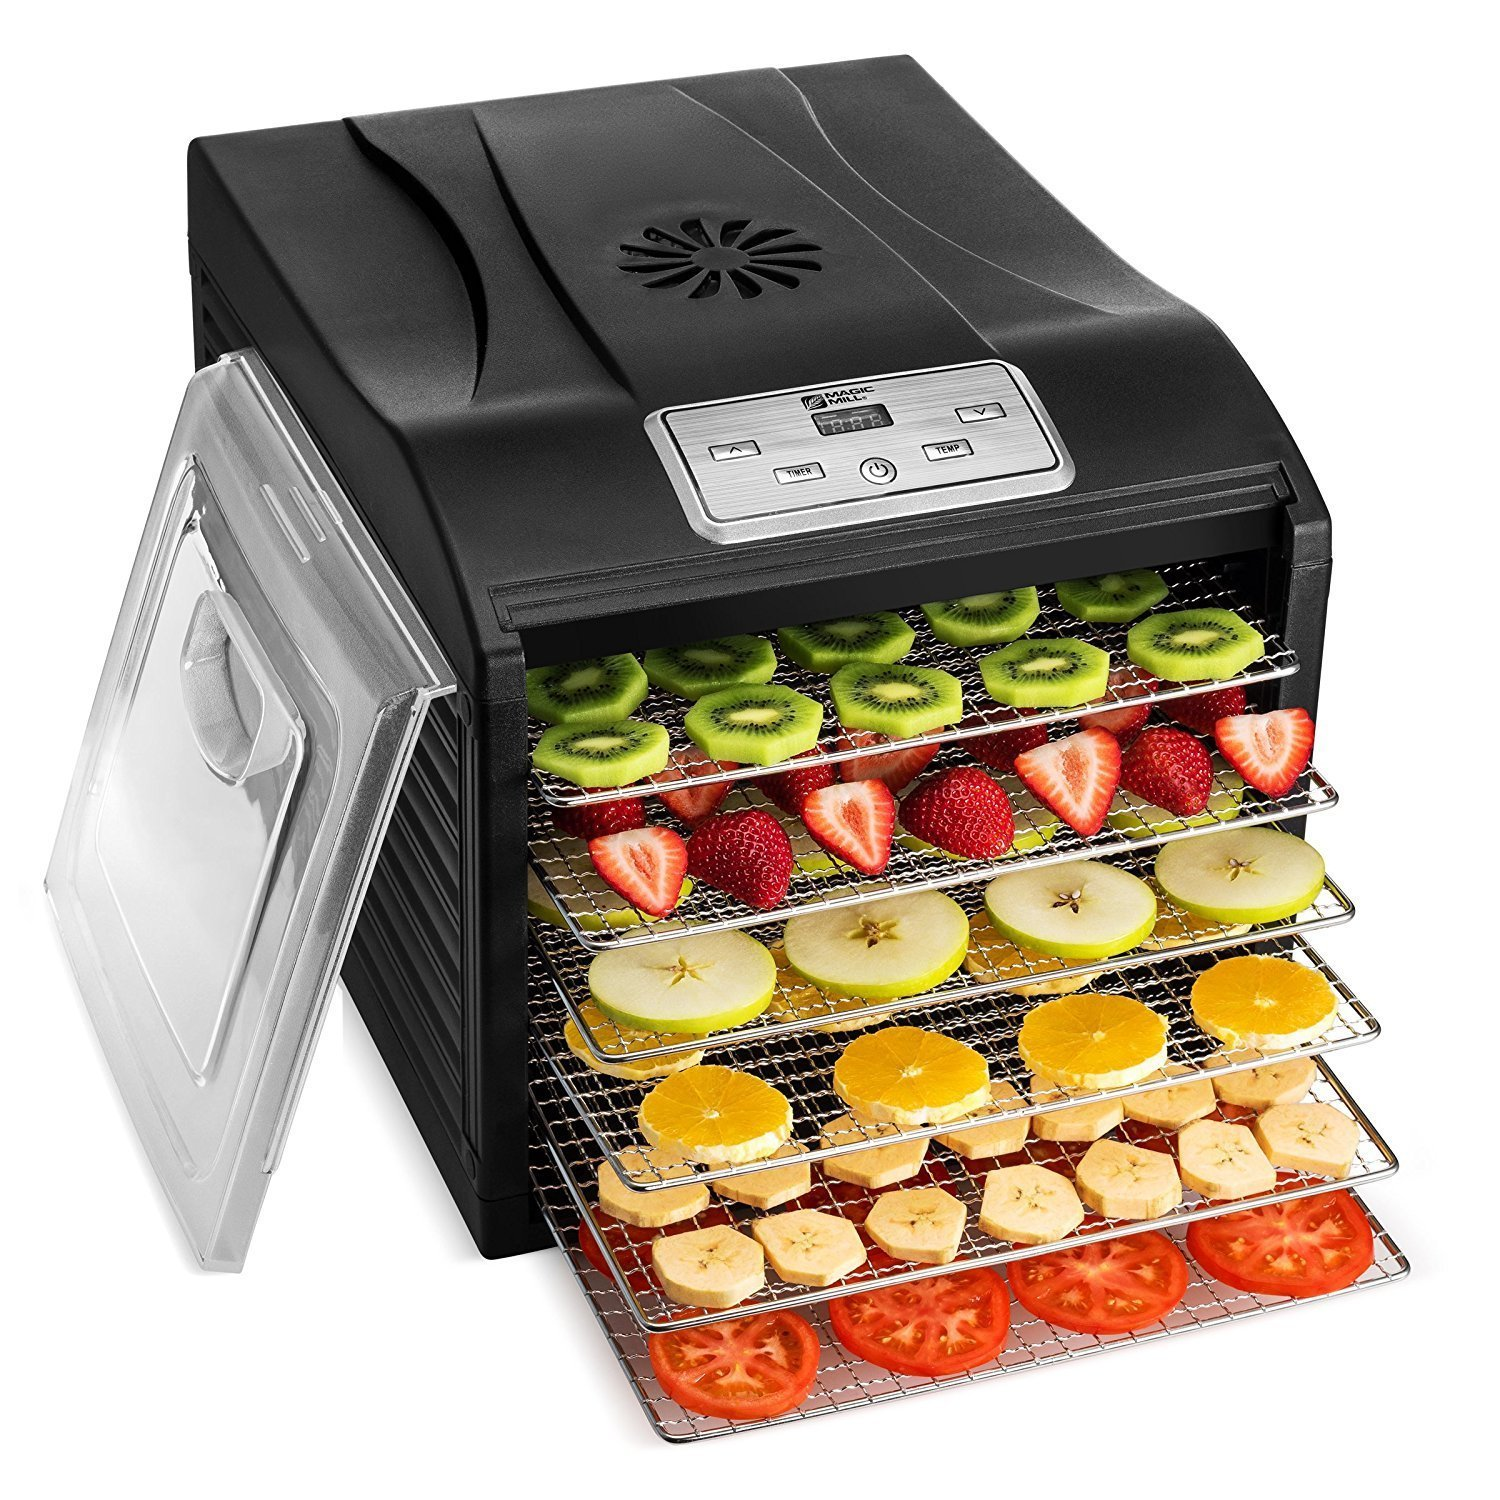 Best Dehydrator For Jerky Reviews And Buying Guide 2020